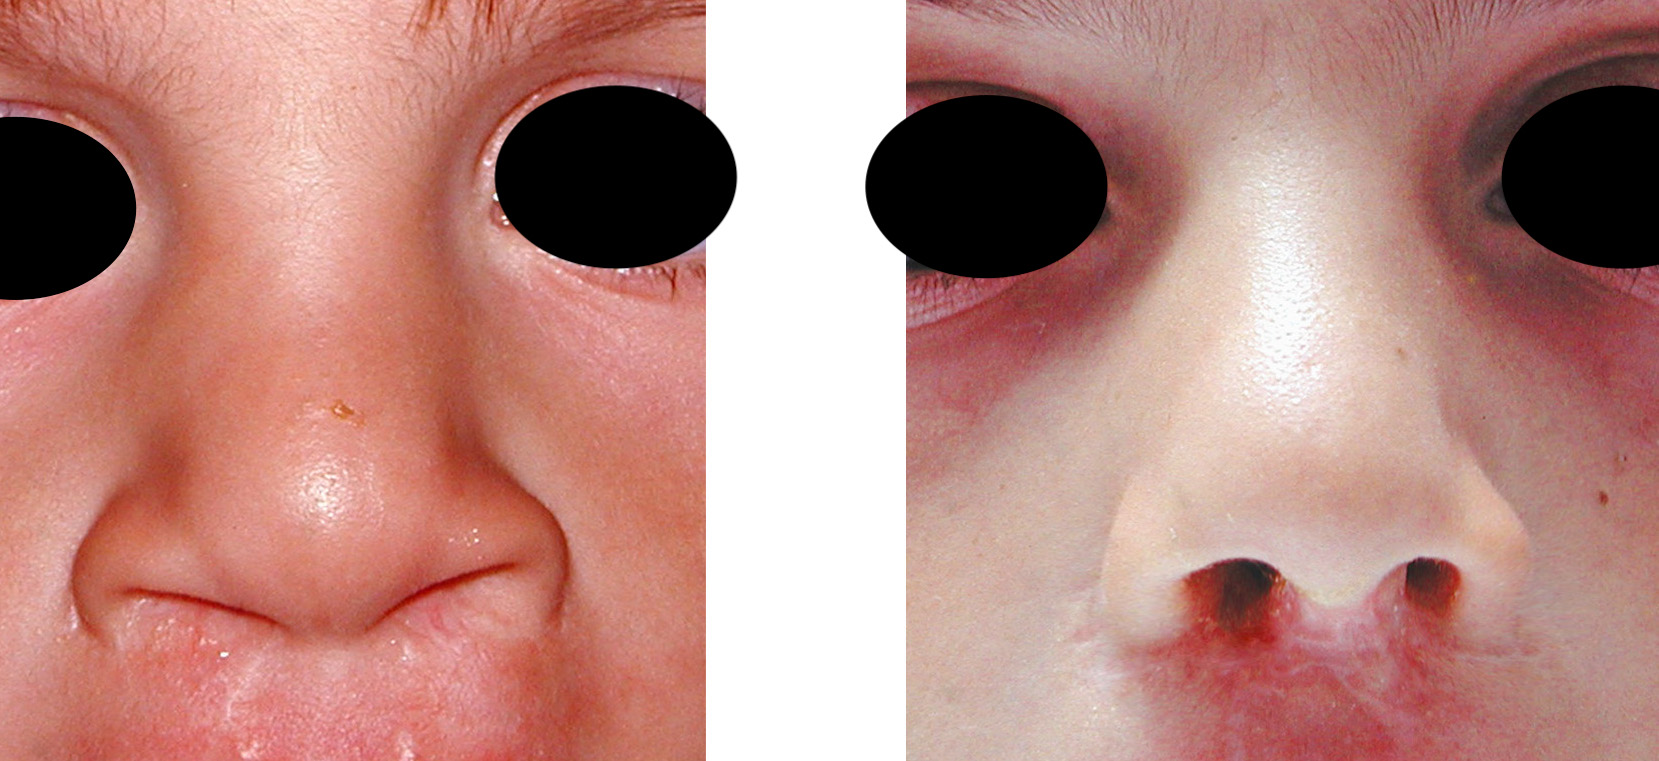 cleft lip and cleft palate essay Some infants are born with a cleft lip, cleft palate or both now, they are routinely  corrected by surgery learn more about what it means to have.